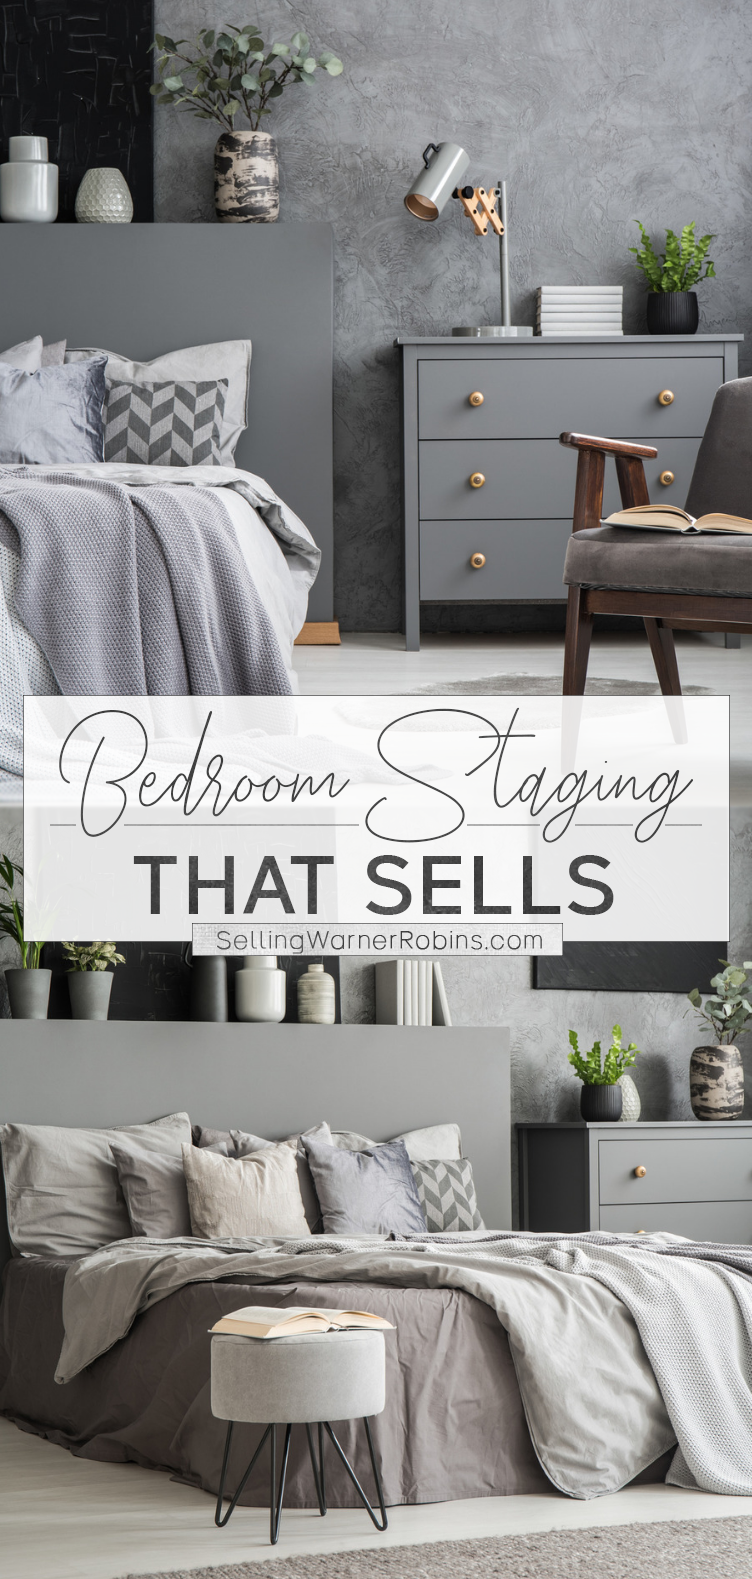 How To Stage A Bedroom To Sell Your Home Home decor